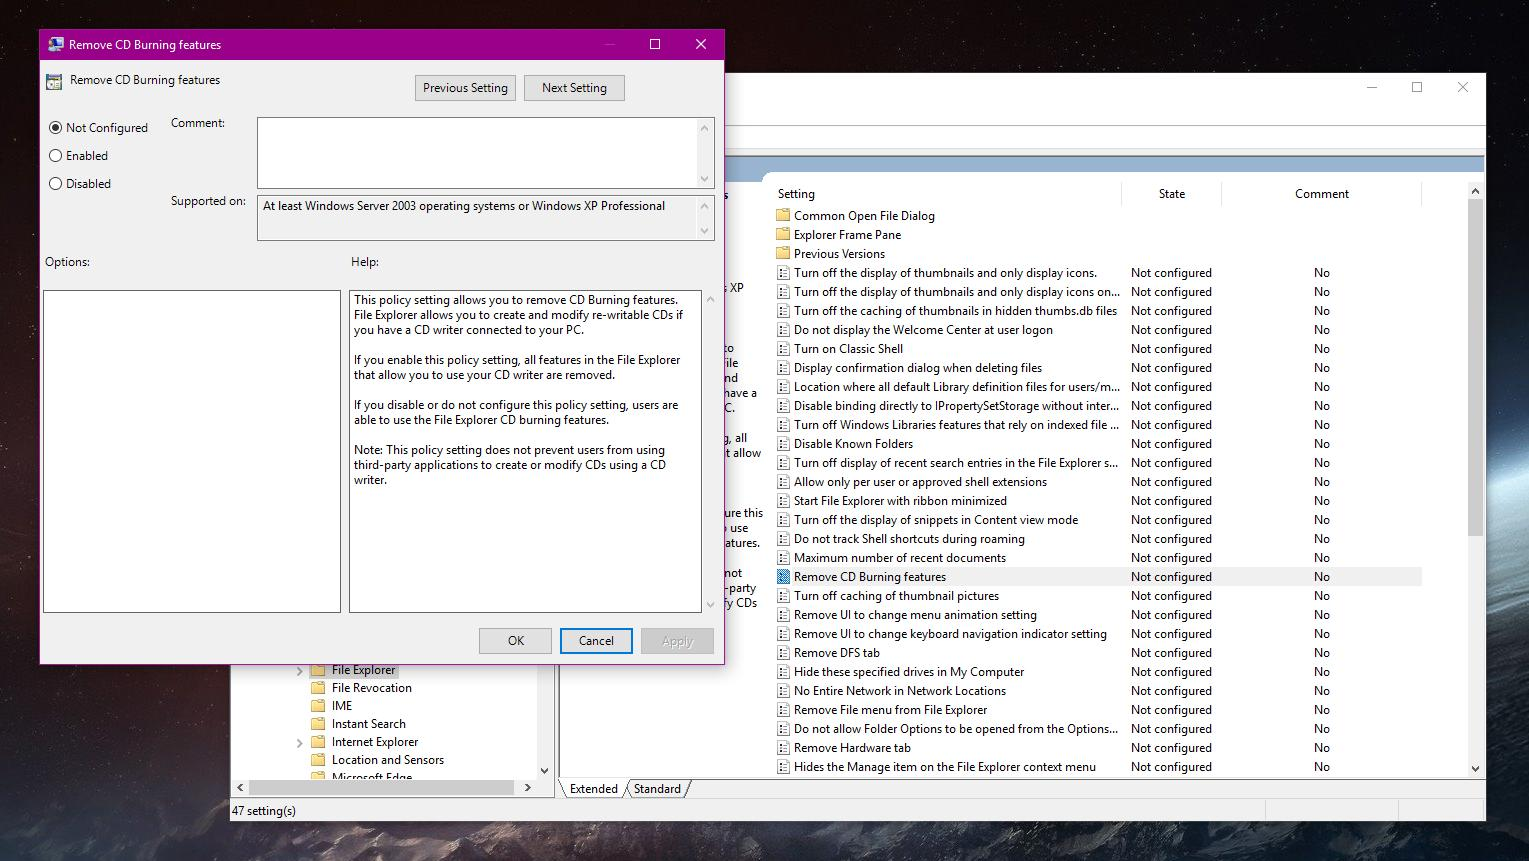 How to Disable CD Burning Features in Windows 10 Version 1803